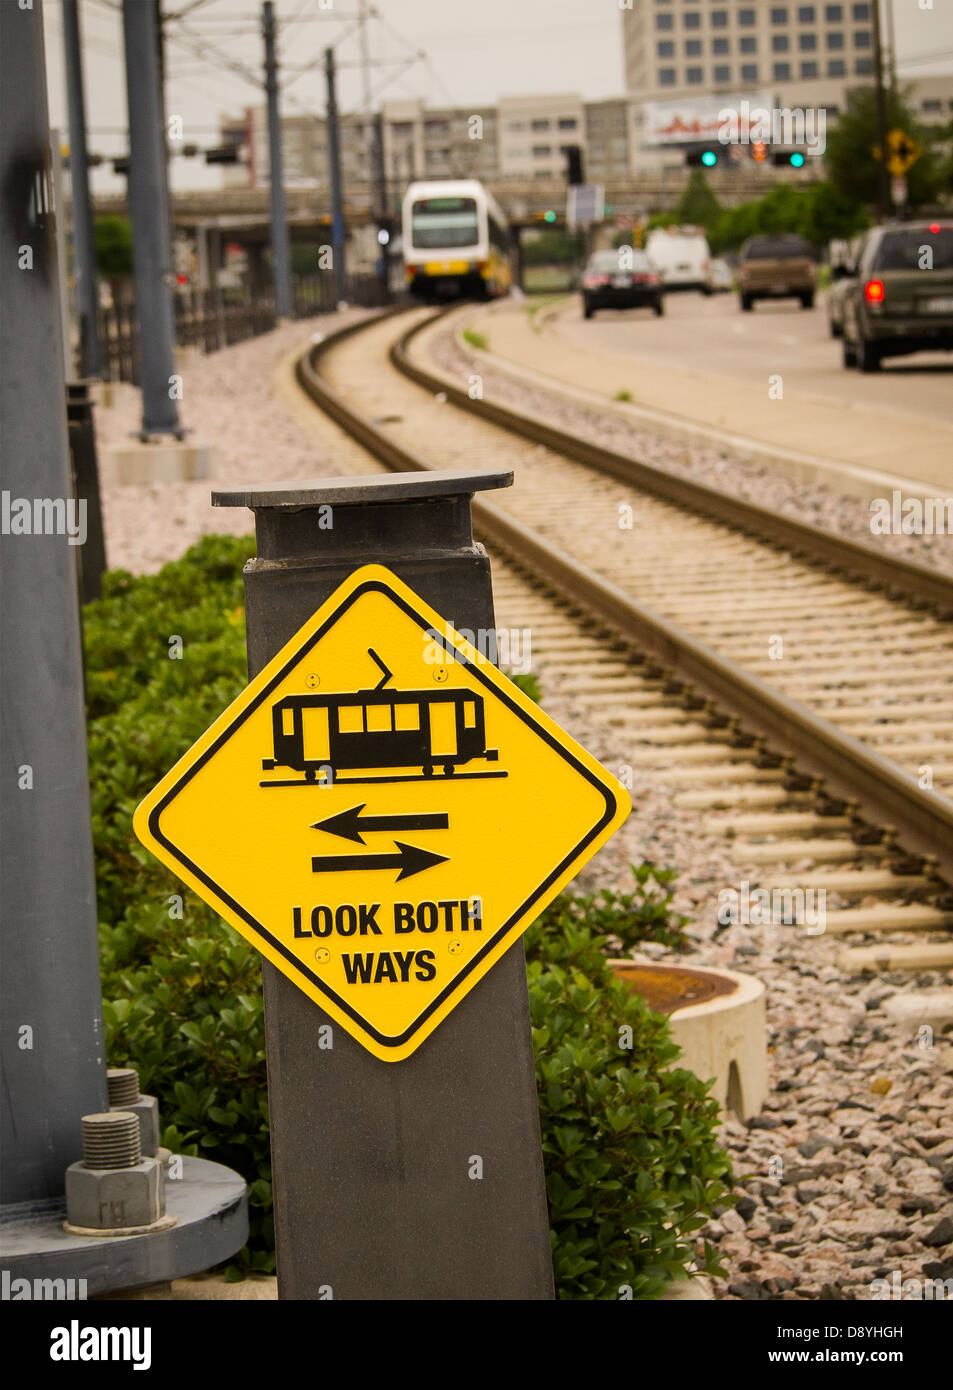 Mass transit comes to Dallas, Dallas Area Rapid Transit, electric street cars. Safety sign warns pedestrians to - Stock Image